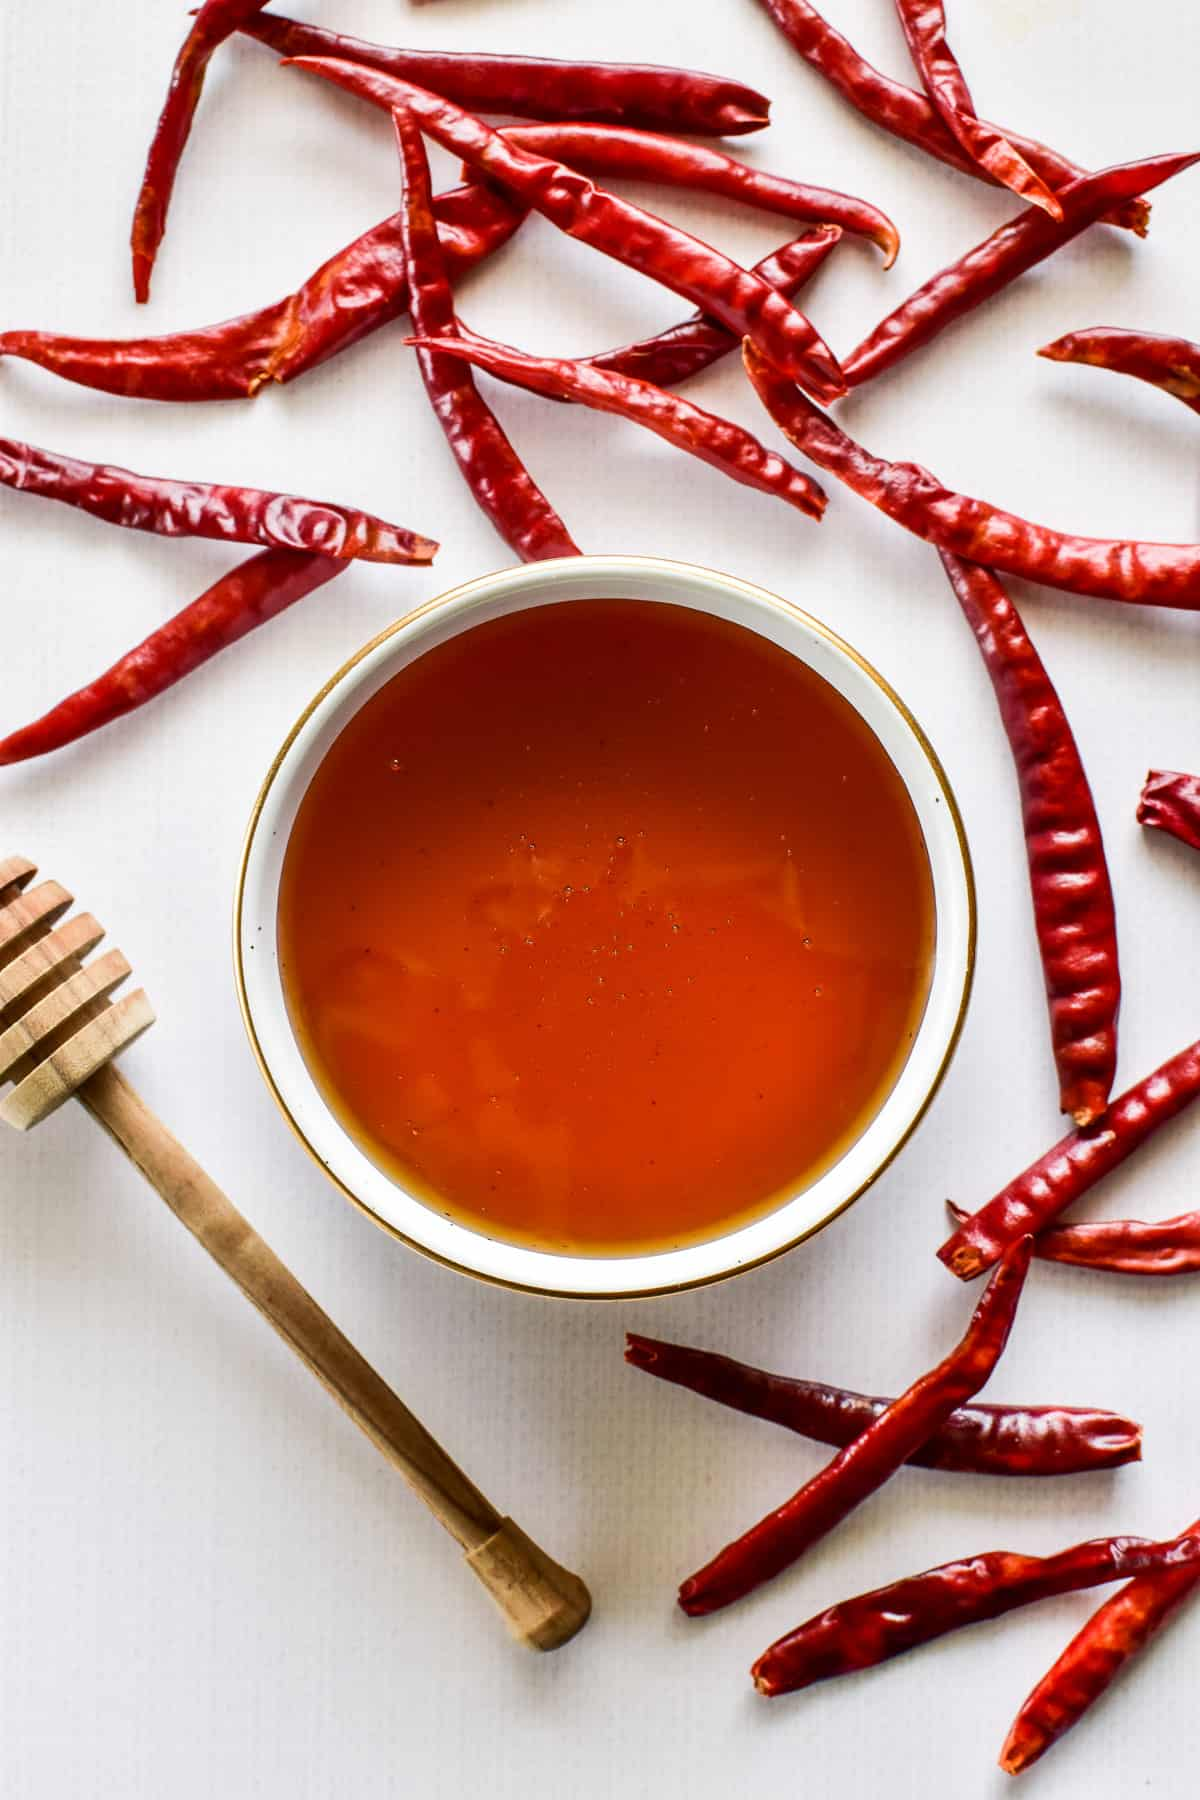 A bowl of honey surrounded by hot chili peppers